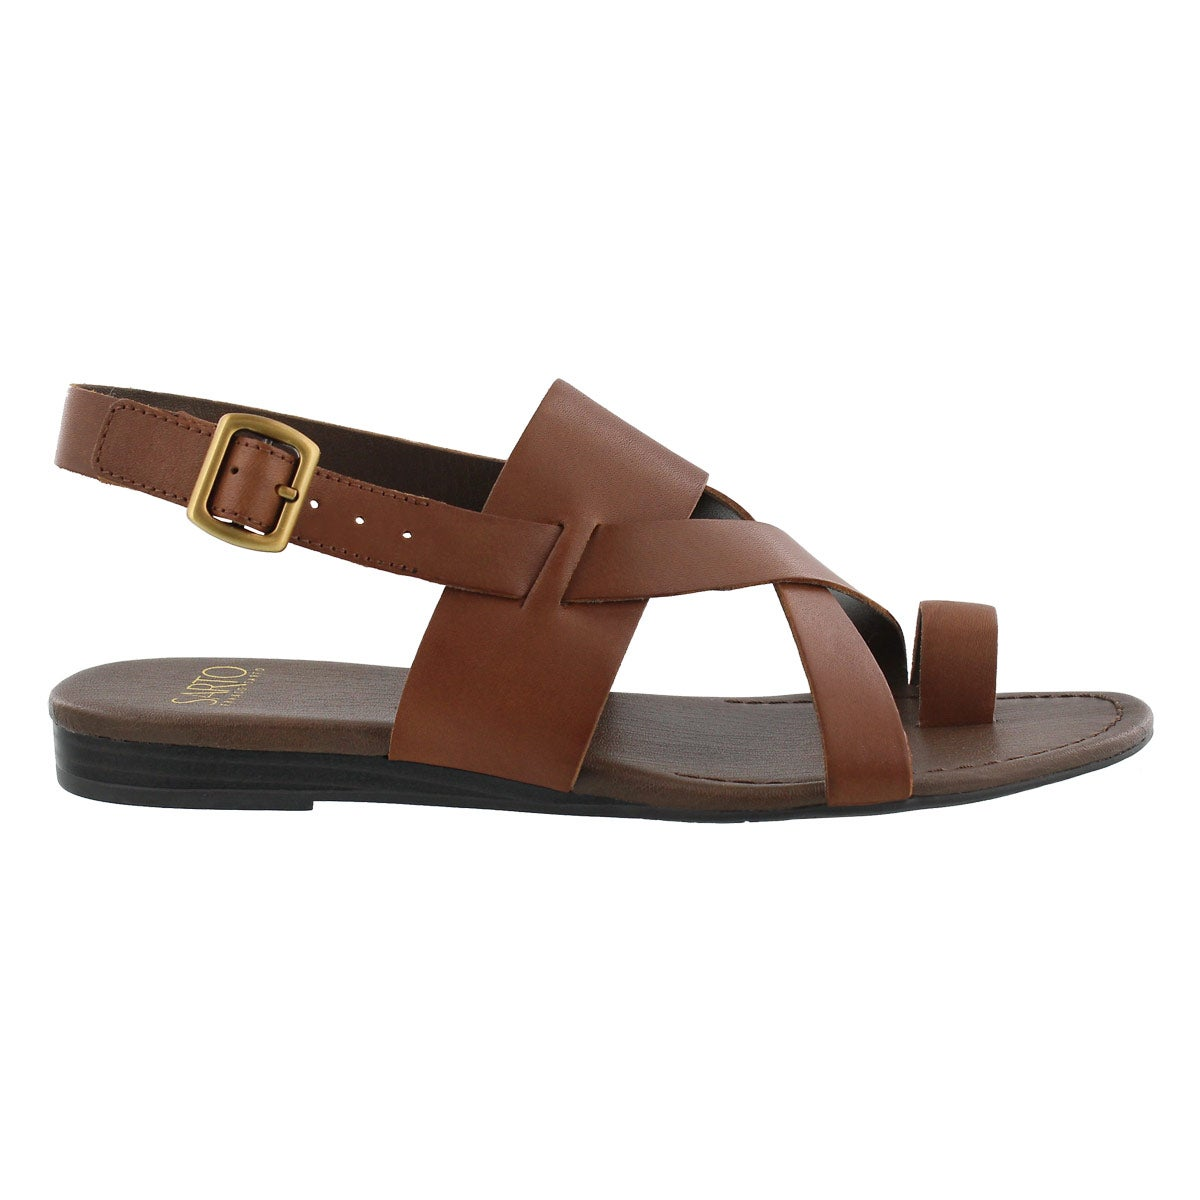 Lds Gia choc brn toe wrap casual sandal